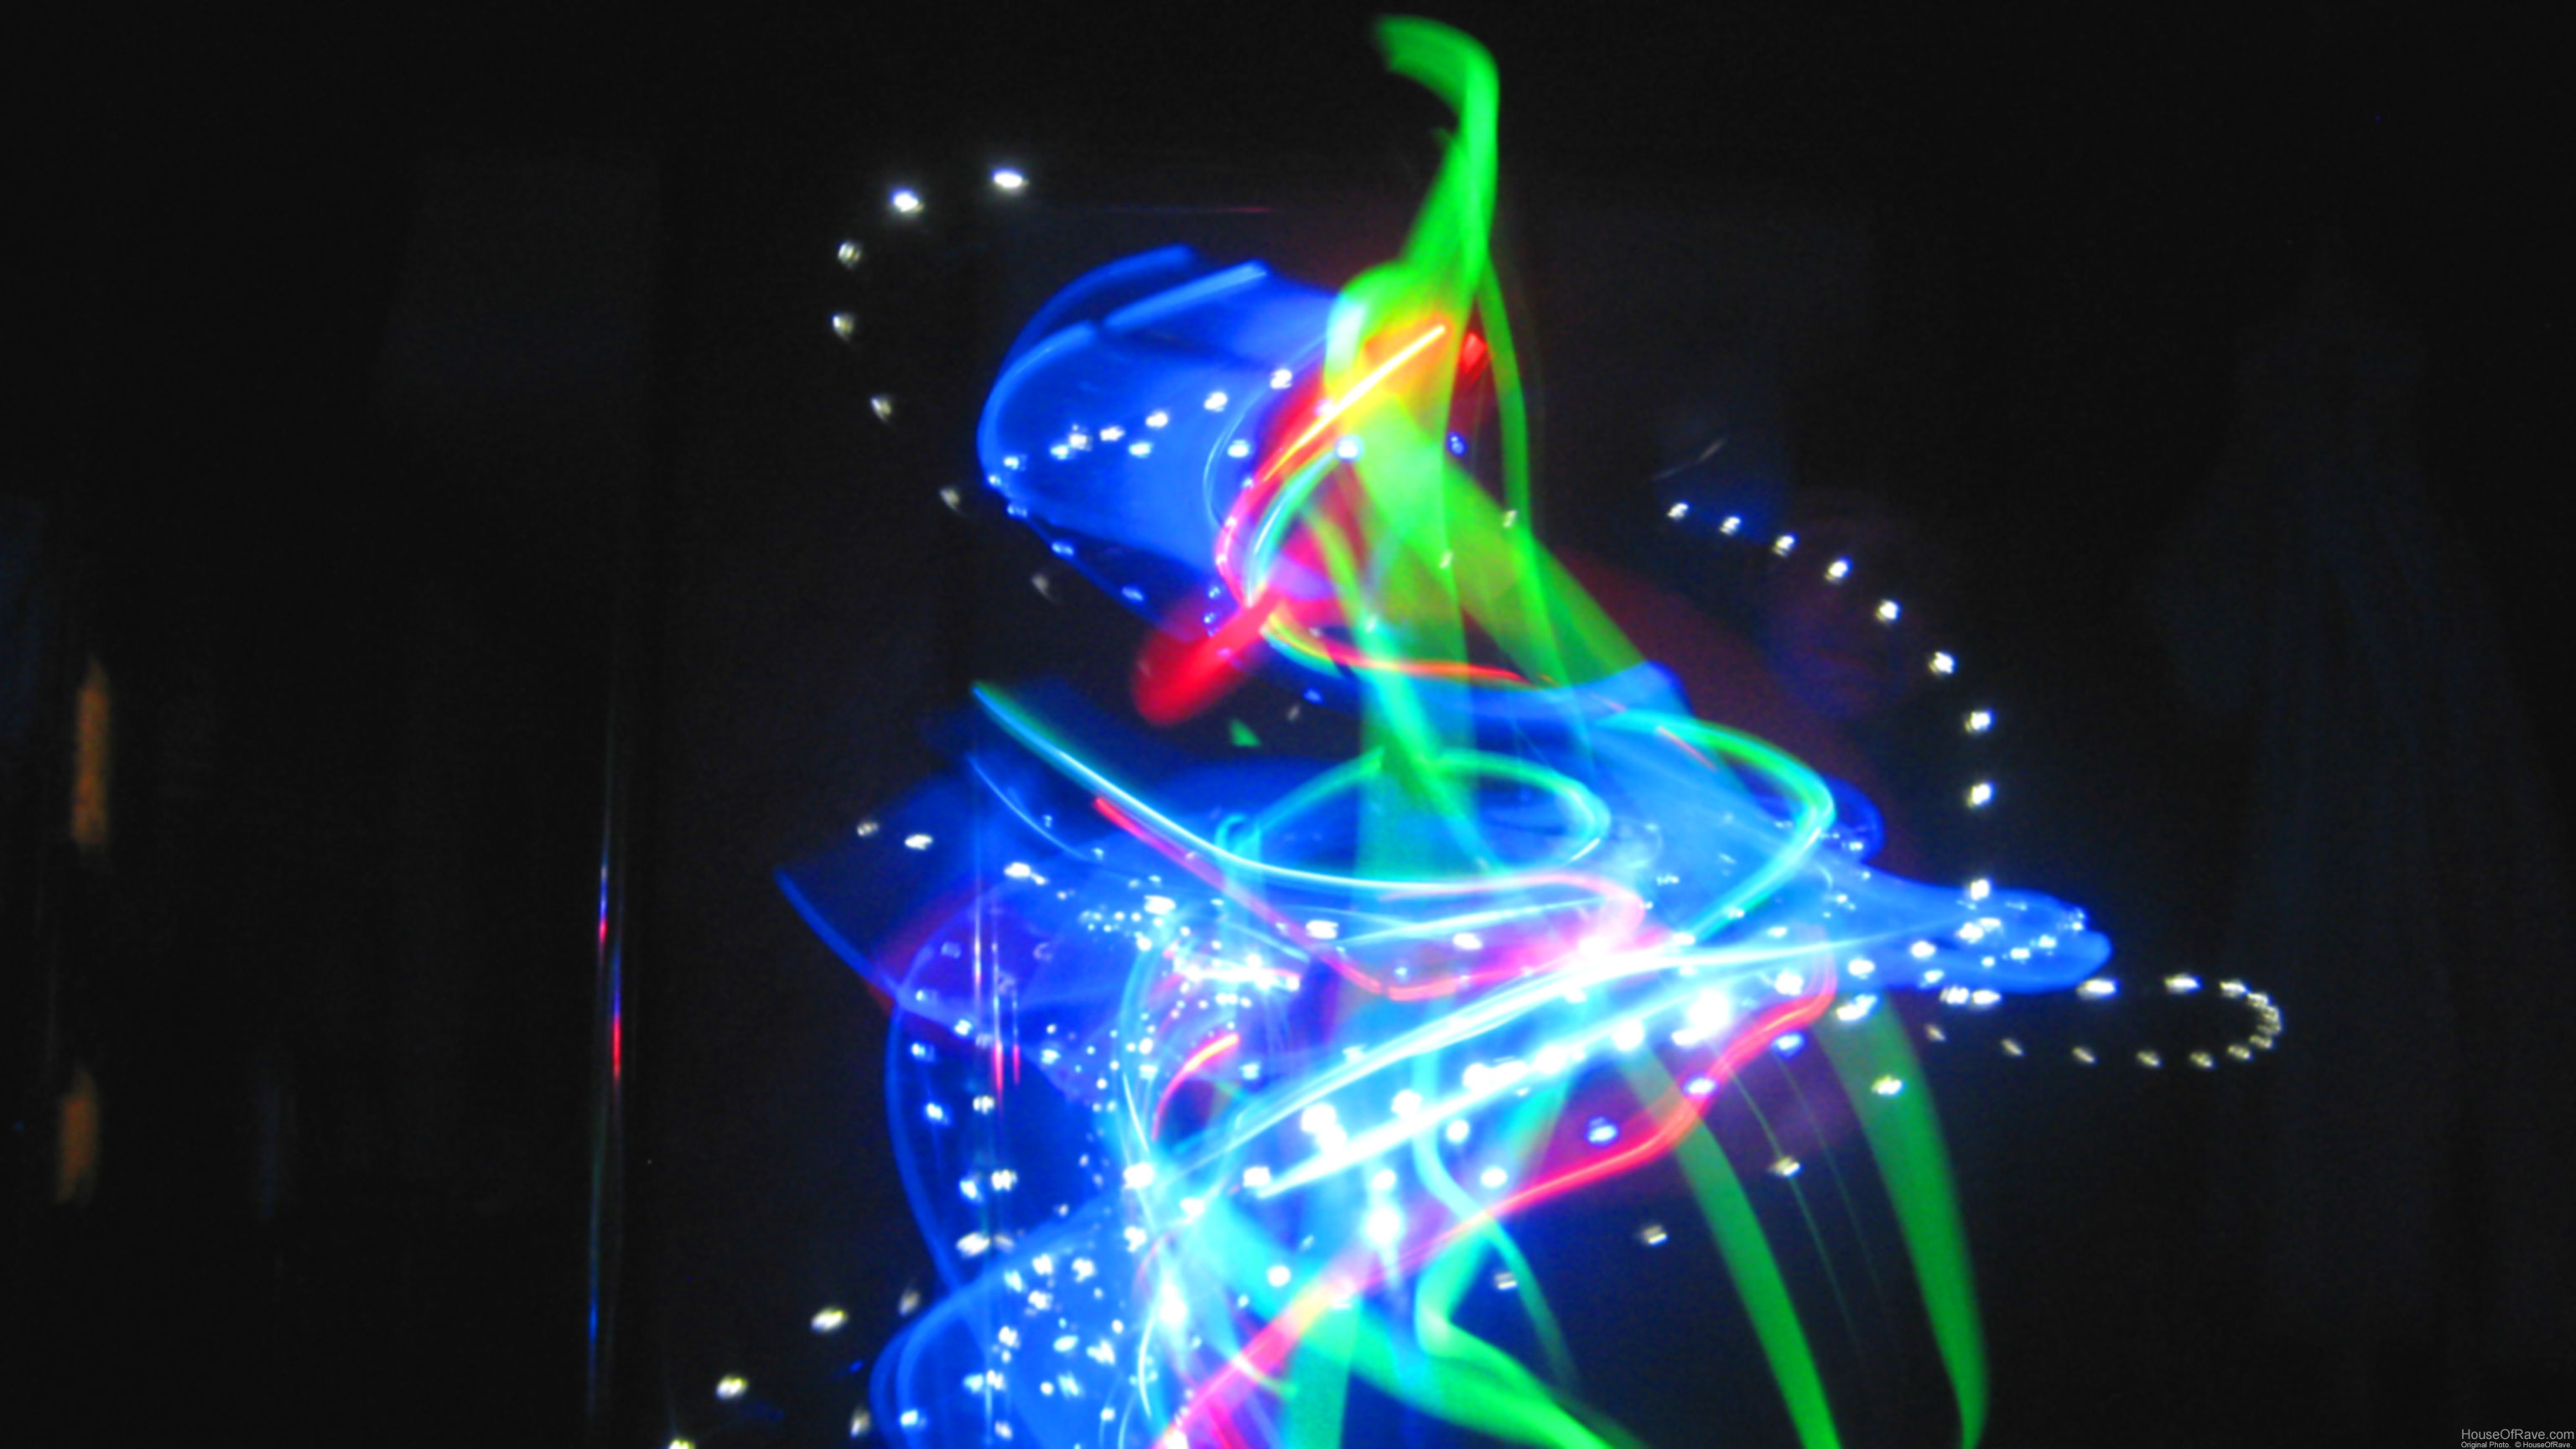 Phish Hd Wallpaper The Guy Who Invented Glow Sticks Had No Idea They Were So